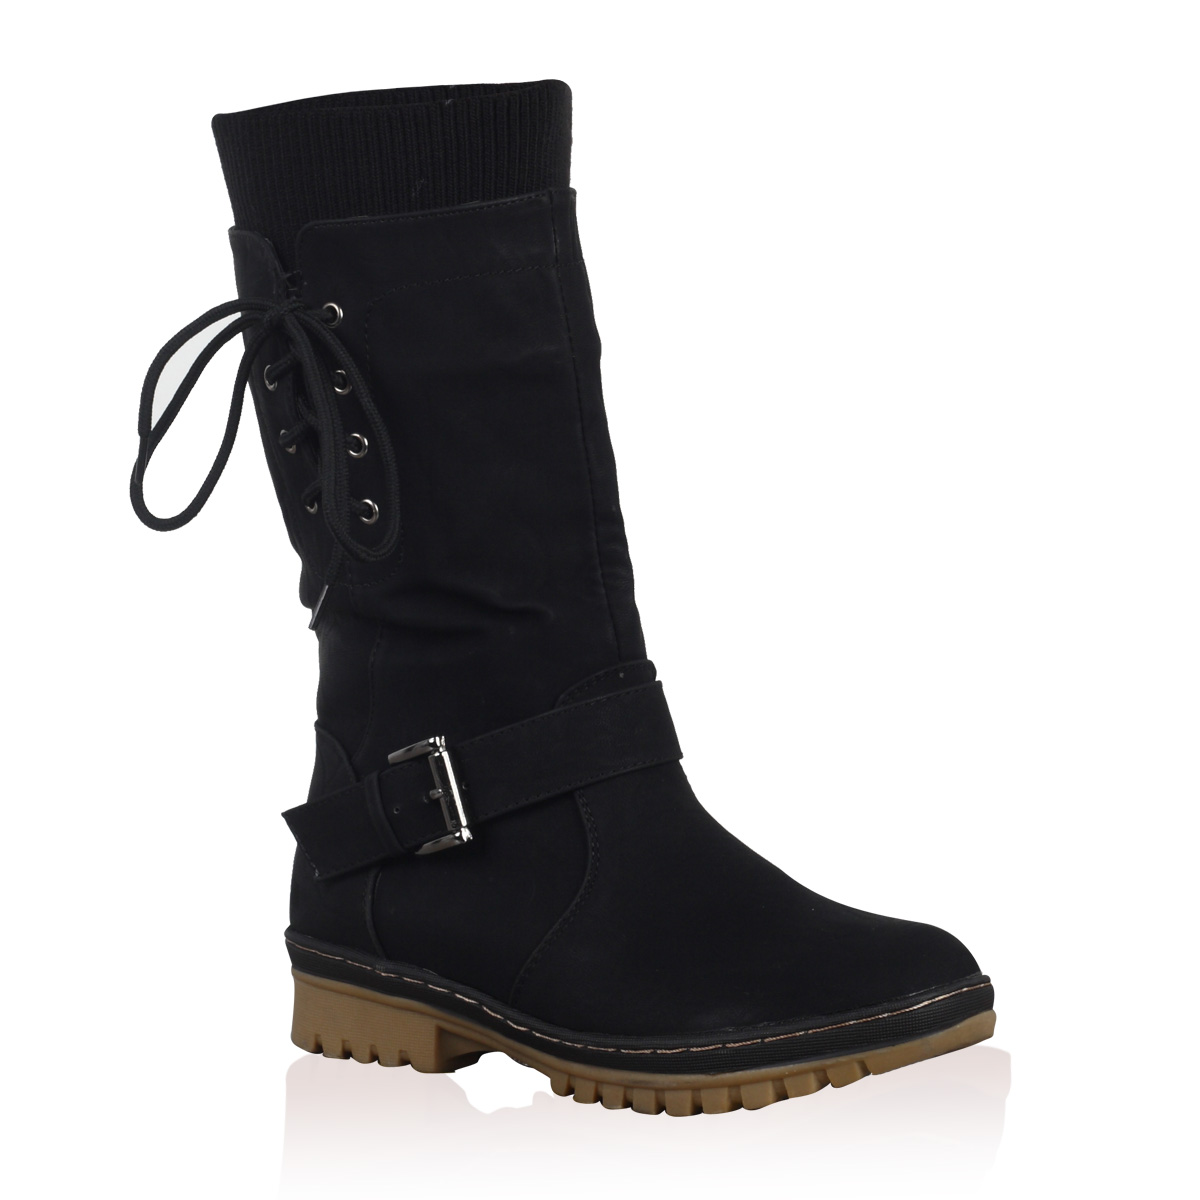 New Ladies Faux Leather Womens Casual Snow Grip Calf High Boots ...